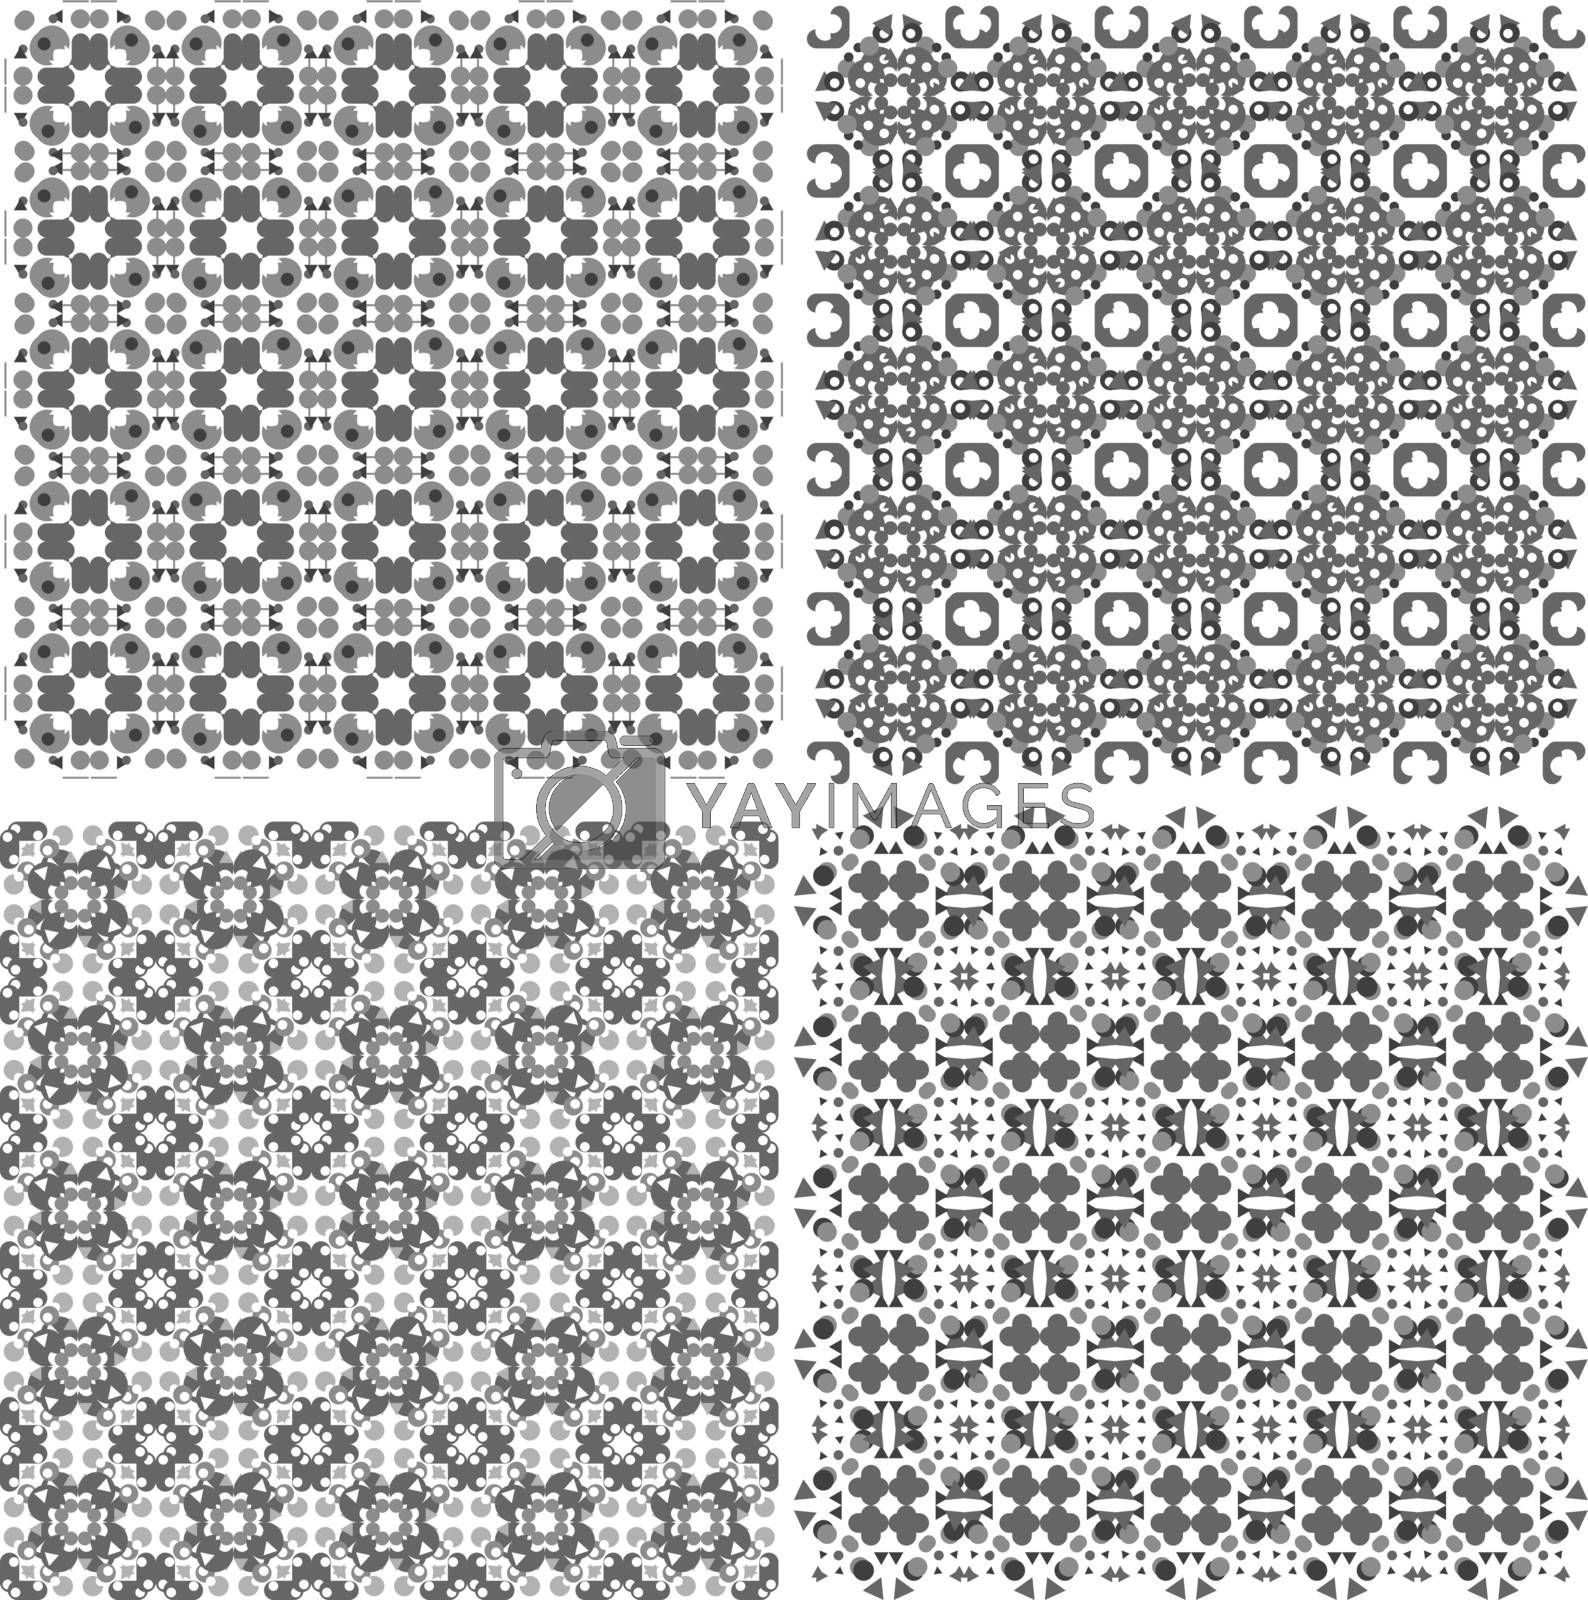 monochrome geometric seamless patterns set. Vector backgrounds collection.